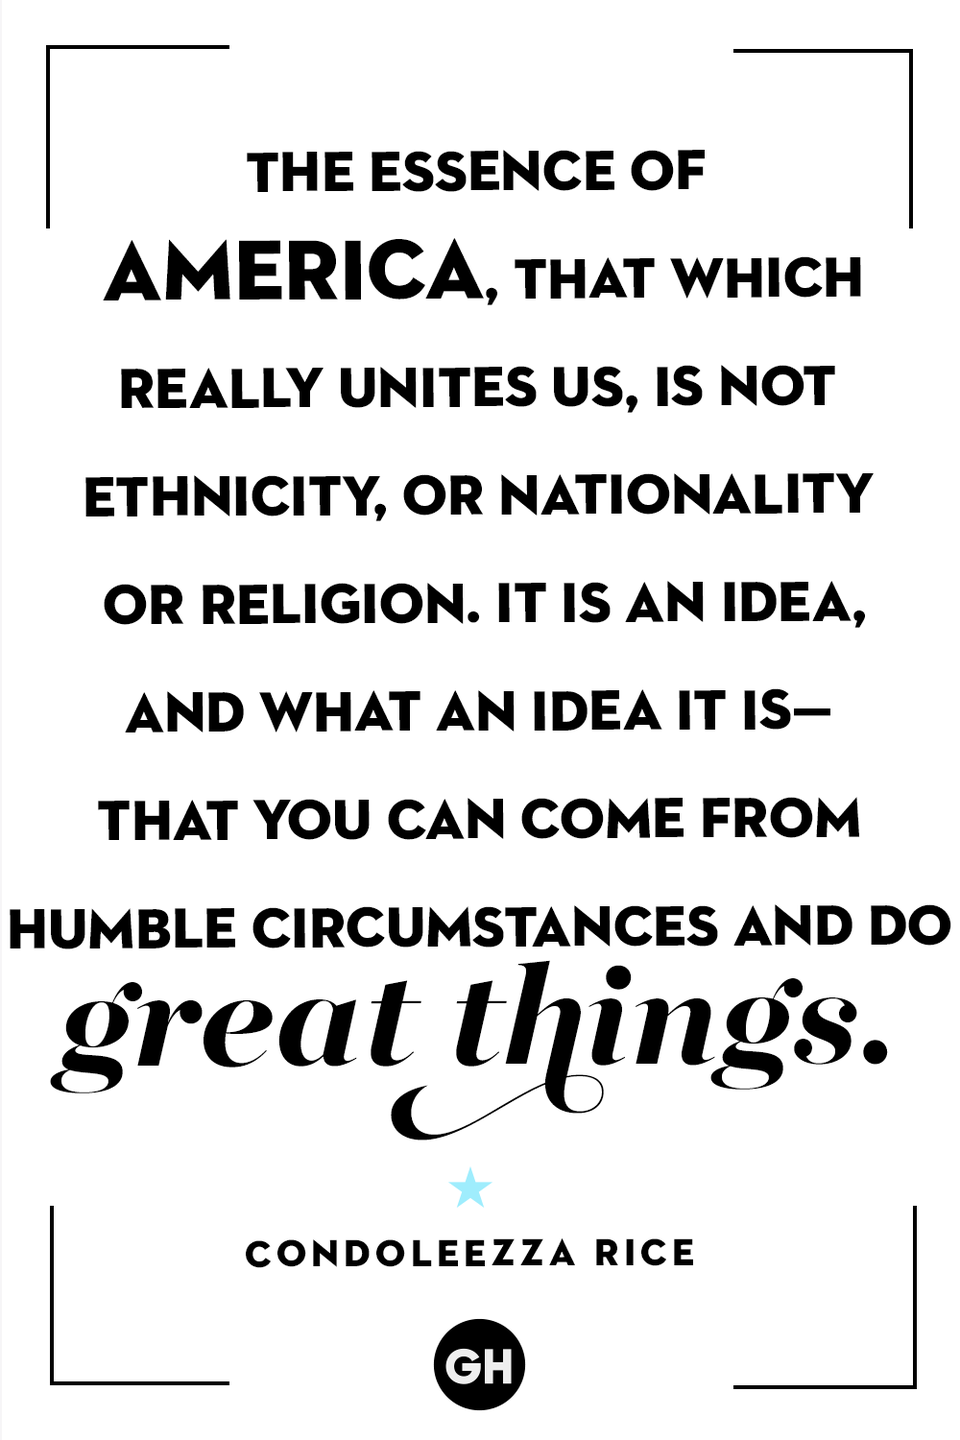 <p>The essence of America, that which really unites us, is not ethnicity or nationality or religion. It is an idea, and what an idea it is — that you can come from humble circumstances and do great things.</p>